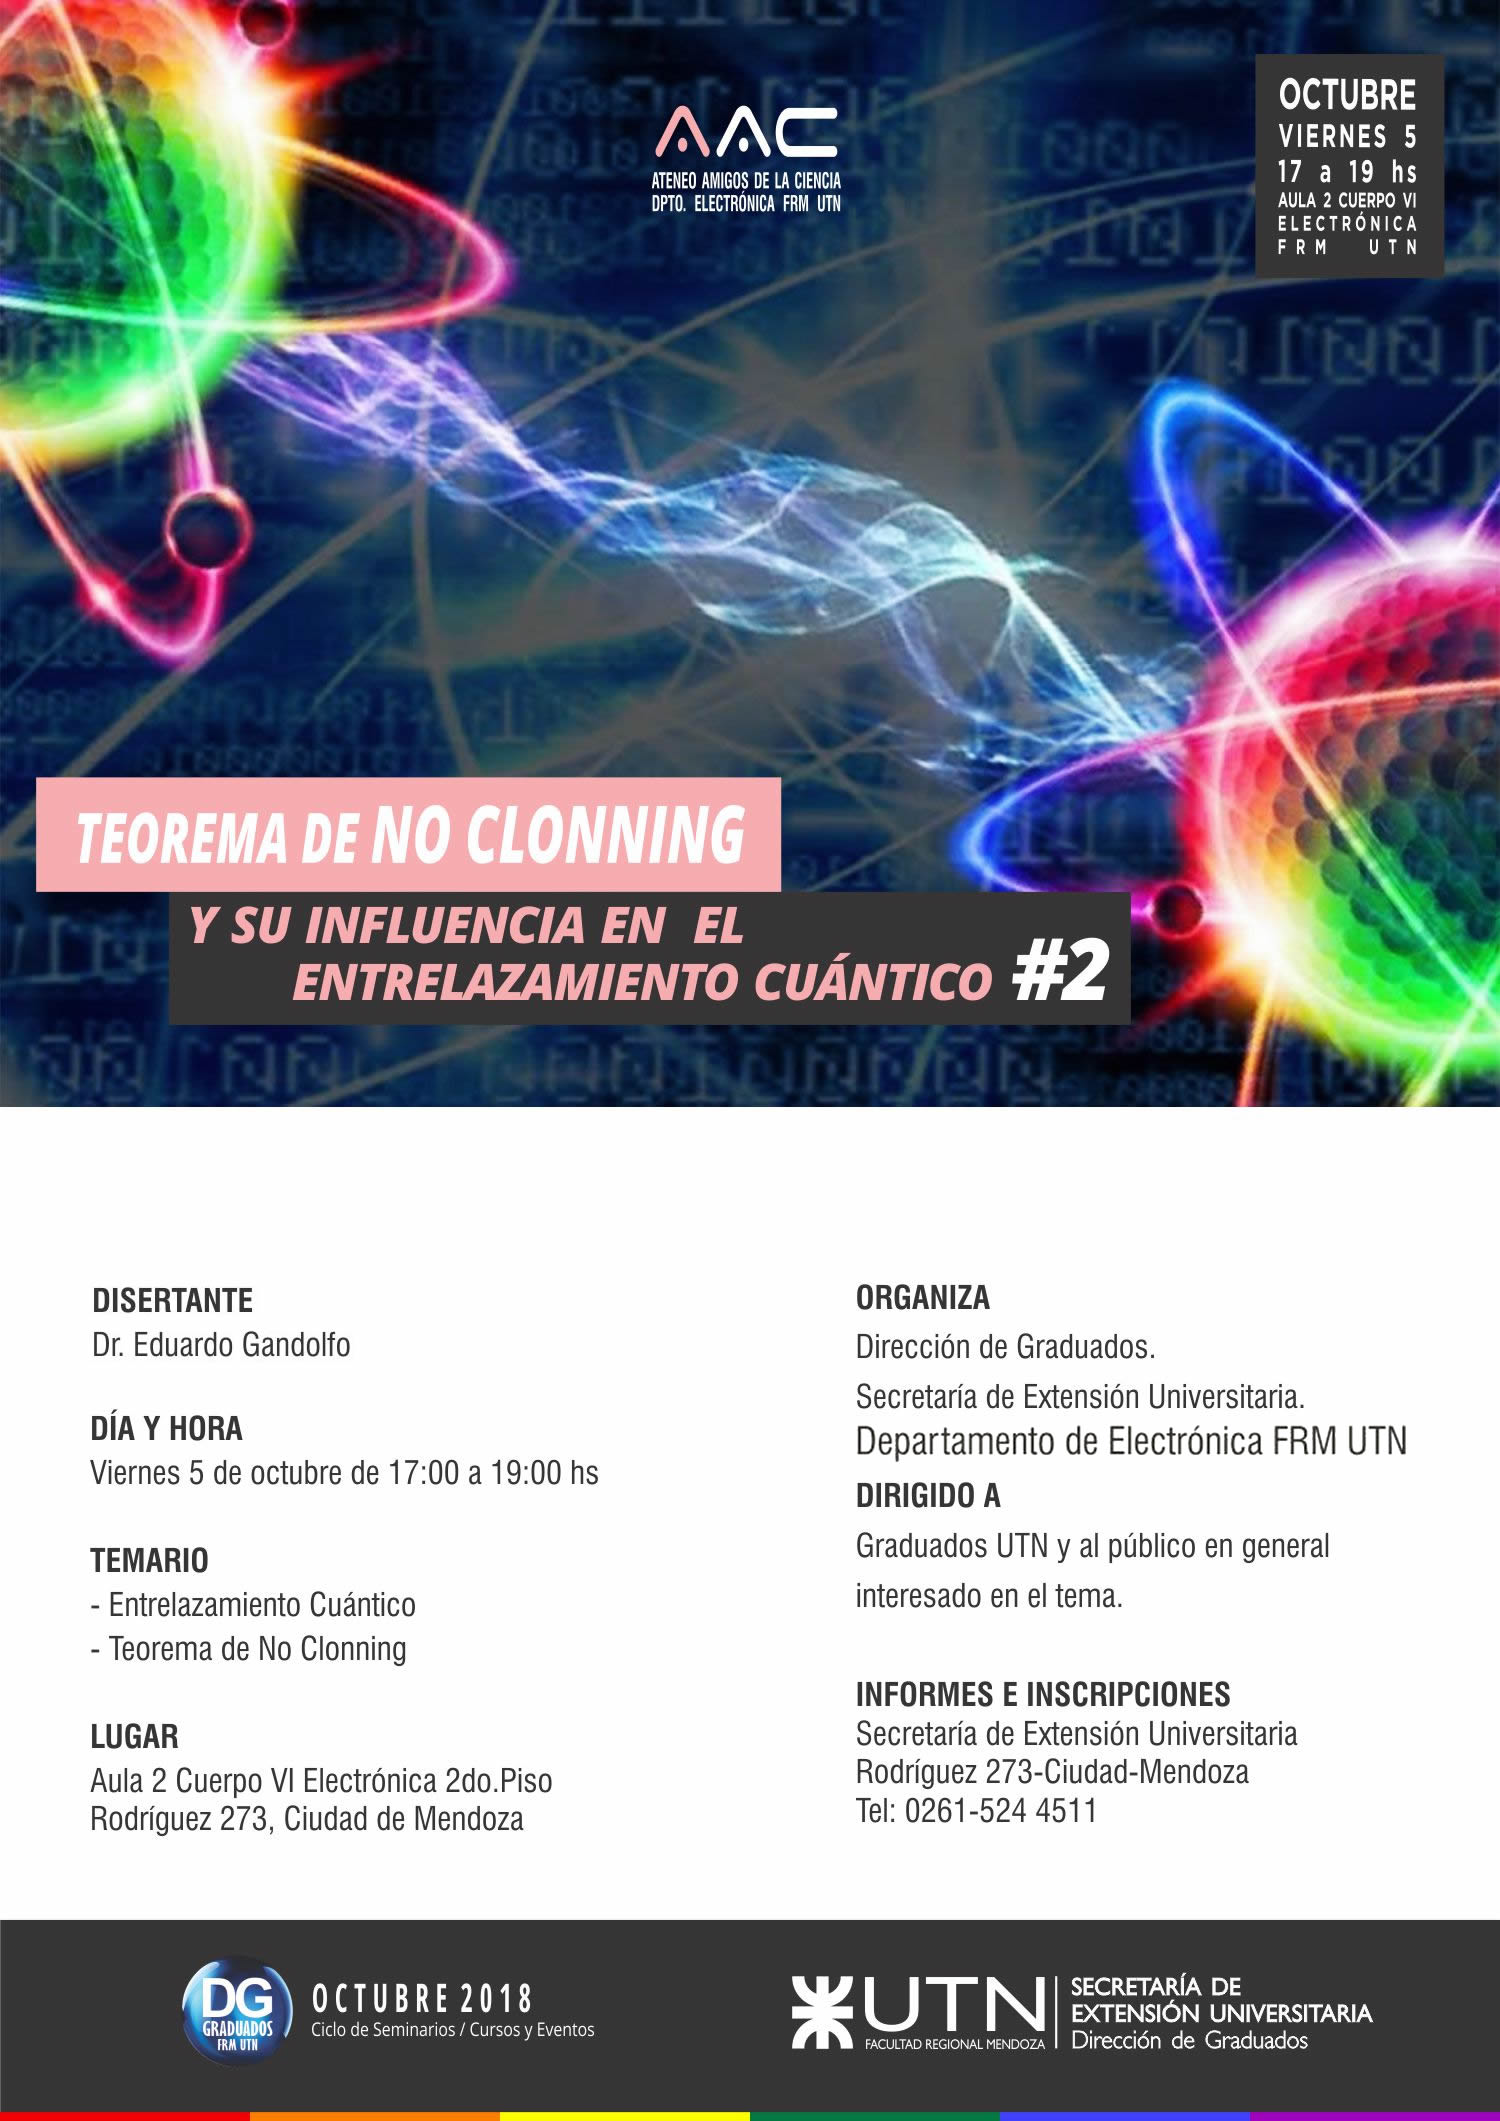 flyer_cuantico_2version2_1.jpg